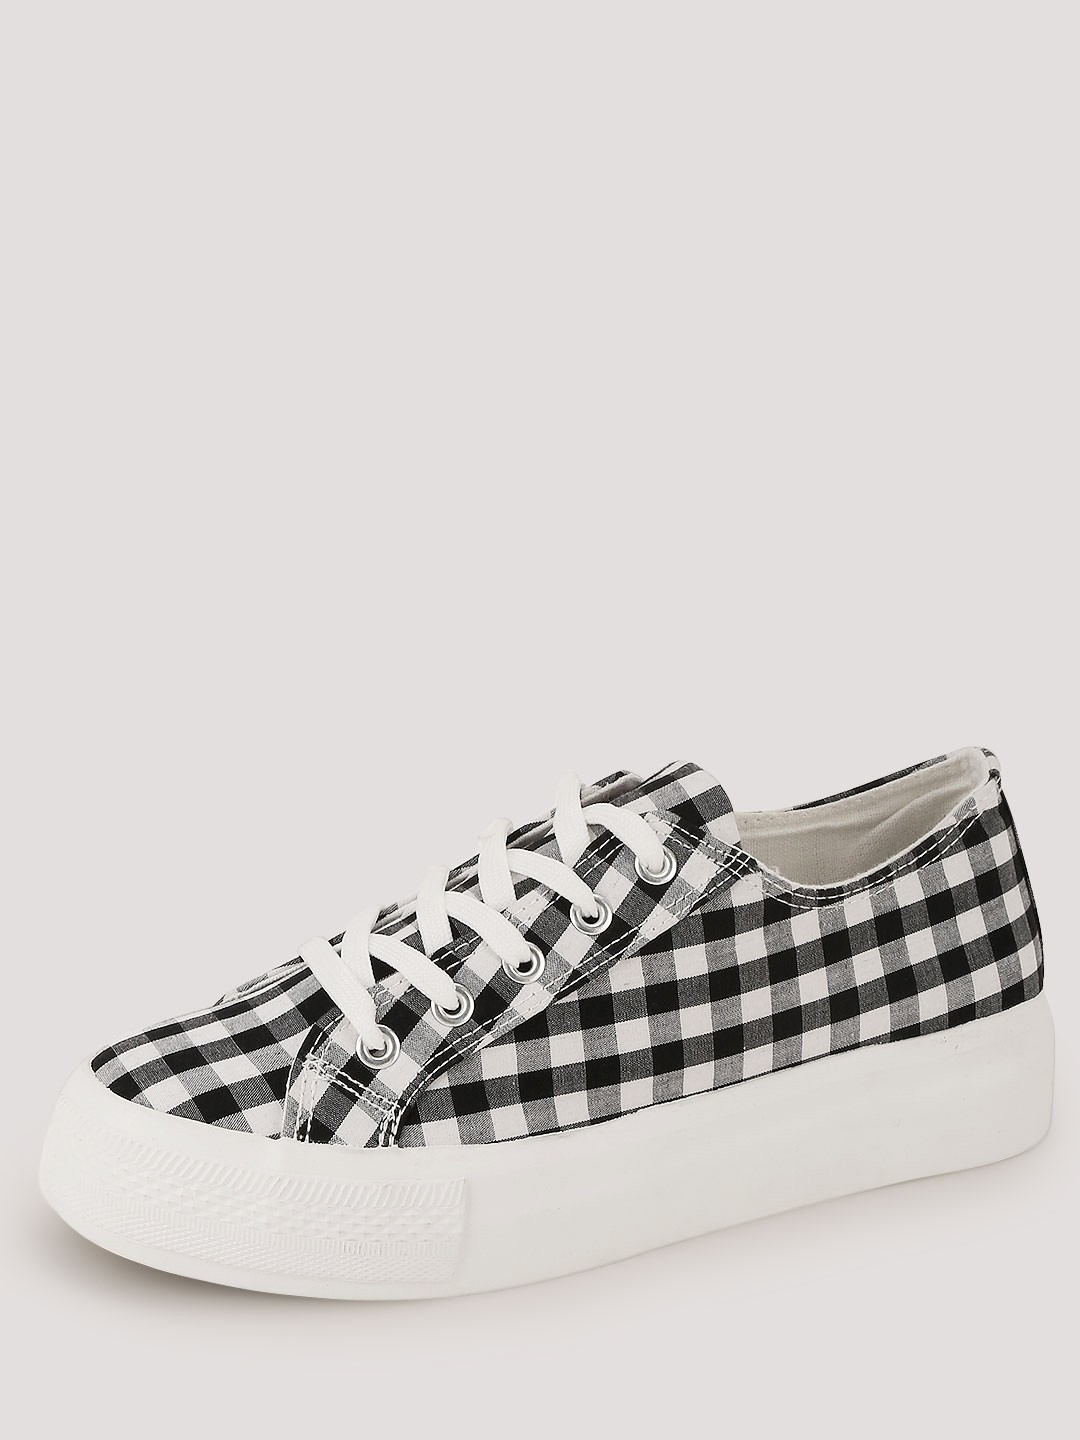 Buy New Look Gingham Flatform Lace Shoes For Women Women